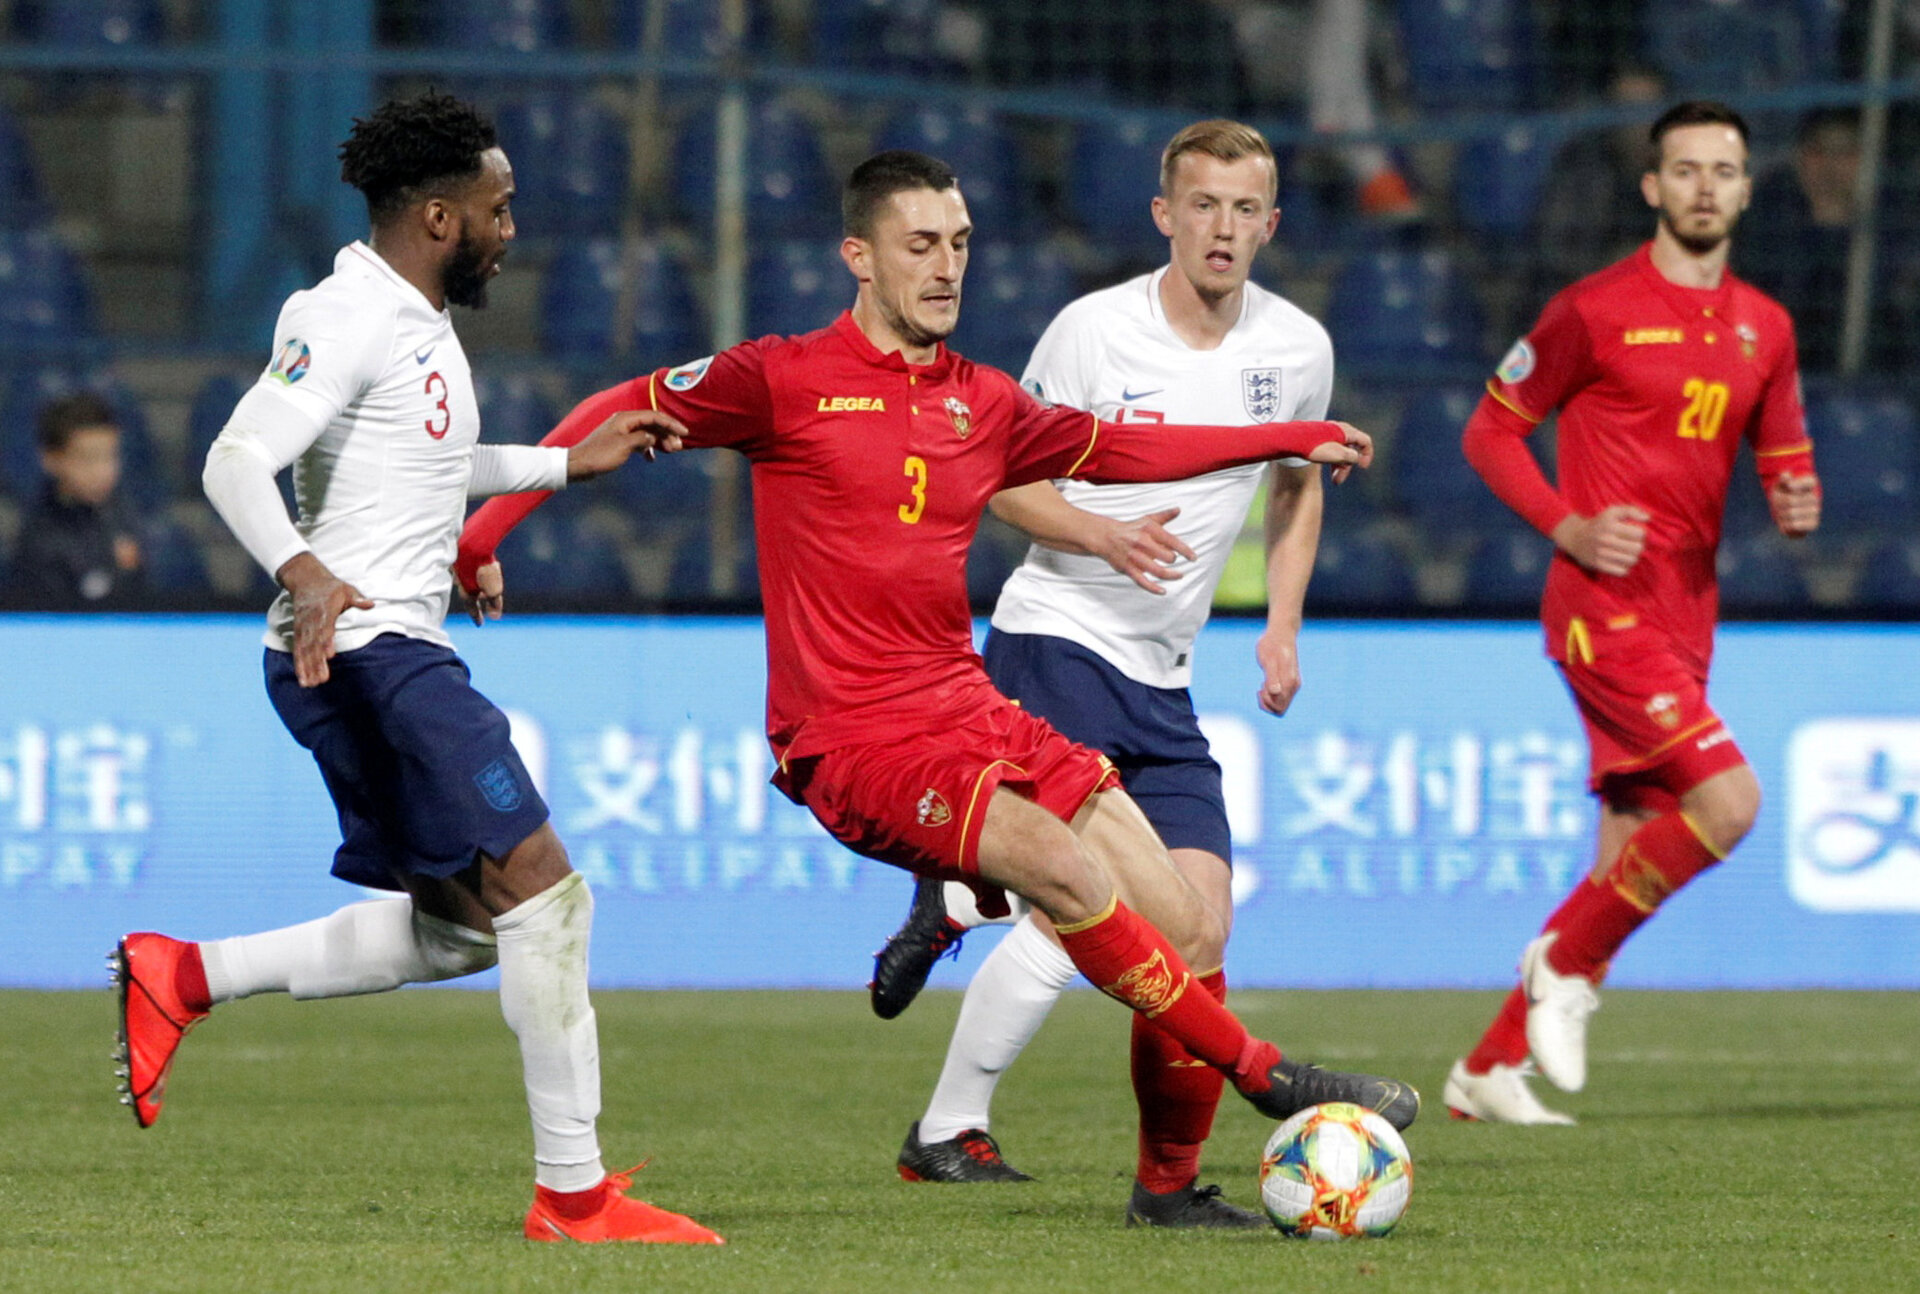 Soccer Football - Euro 2020 Qualifier - Group A - Montenegro v England - Podgorica City Stadium, Podgorica, Montenegro - March 25, 2019  England's James Ward-Prowse and Danny Rose in action with Montenegro's Aleksandar Boljevic              REUTERS/Stevo Vasiljevic